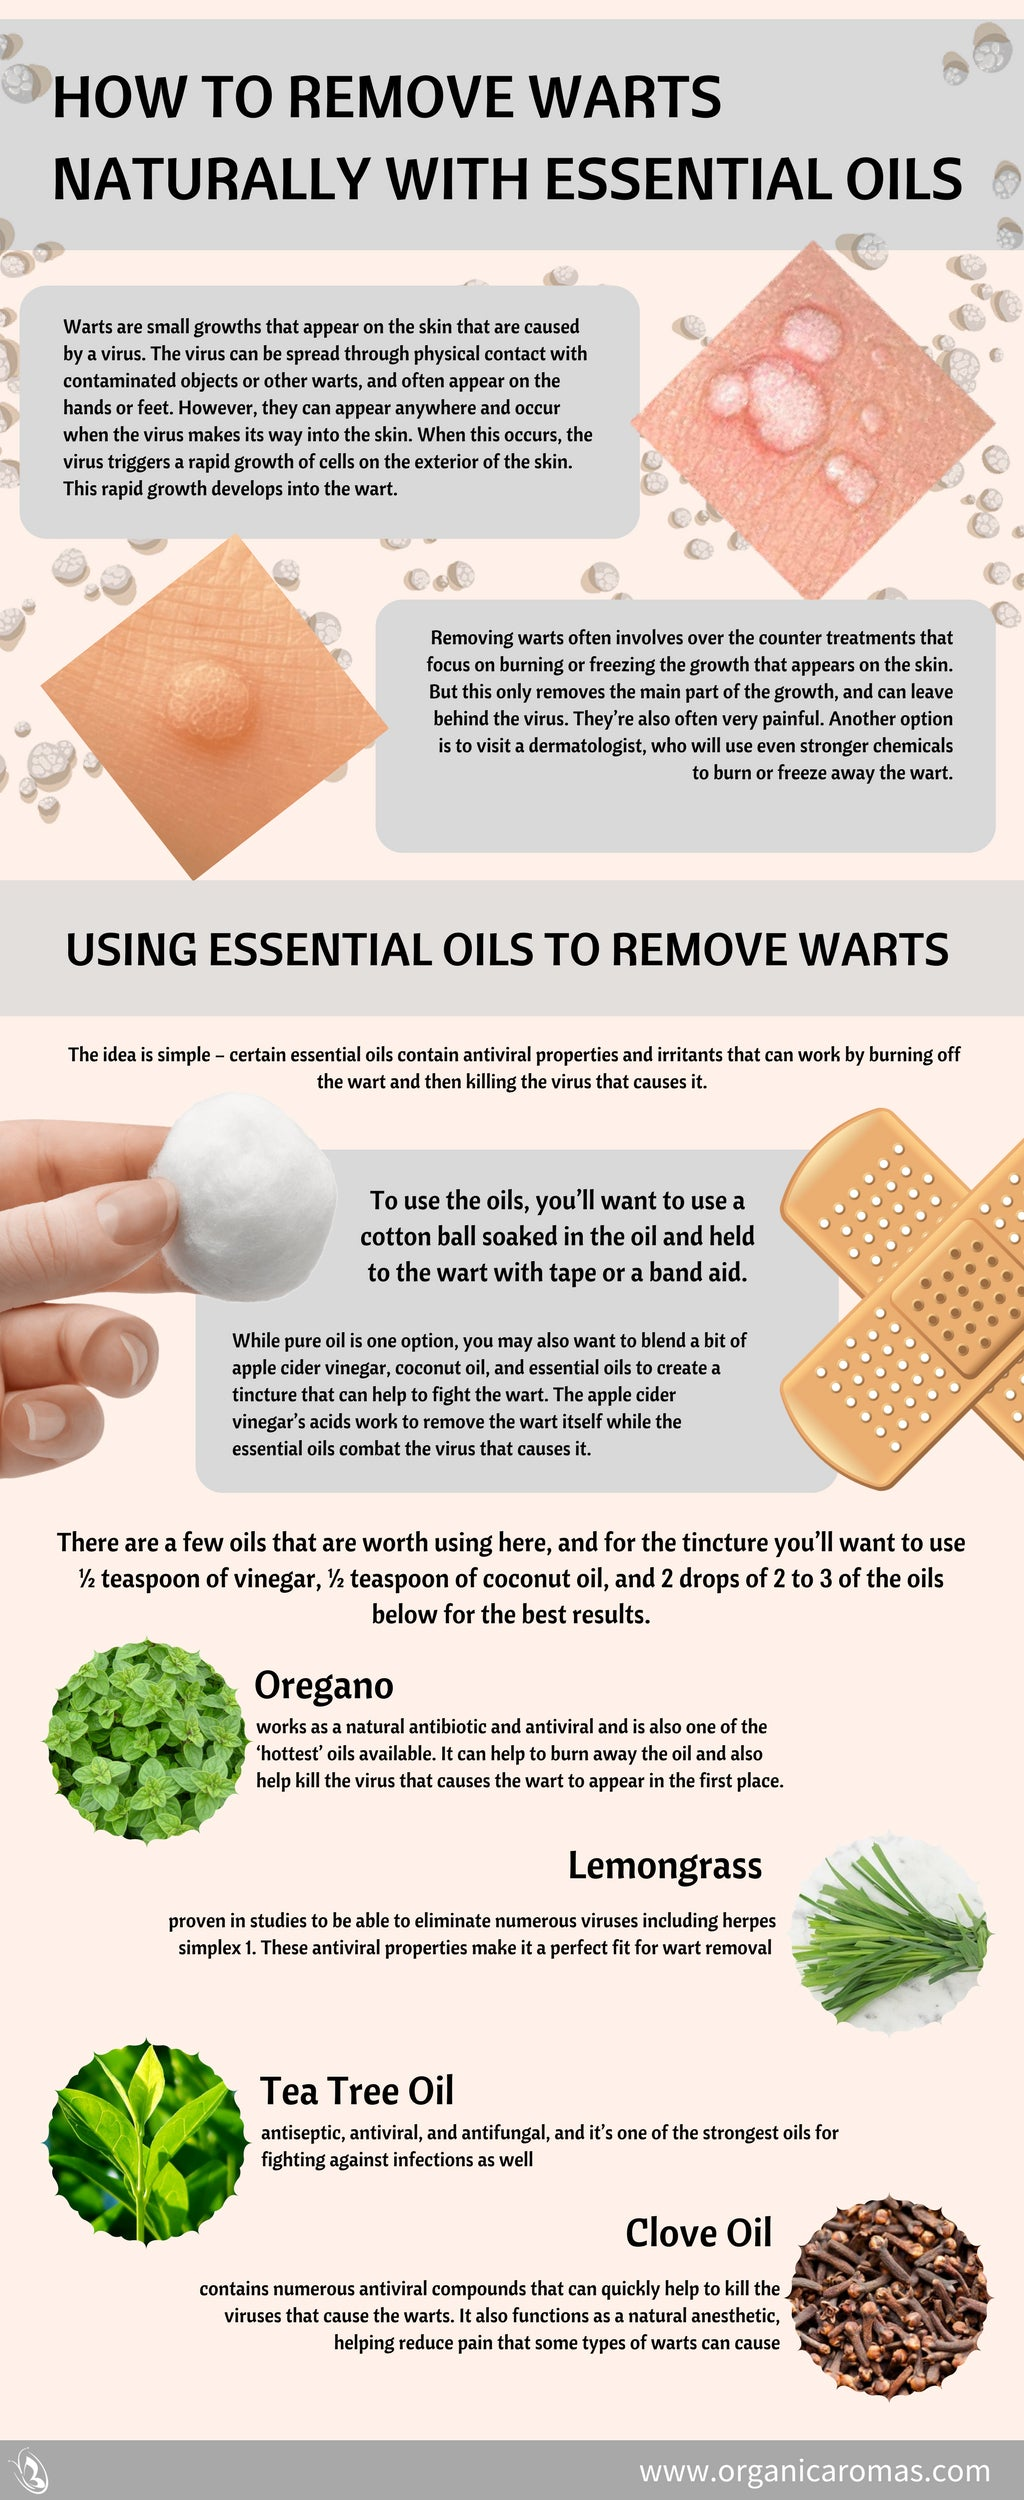 How to Remove Warts Naturally With Essential Oils - Organic Aromas